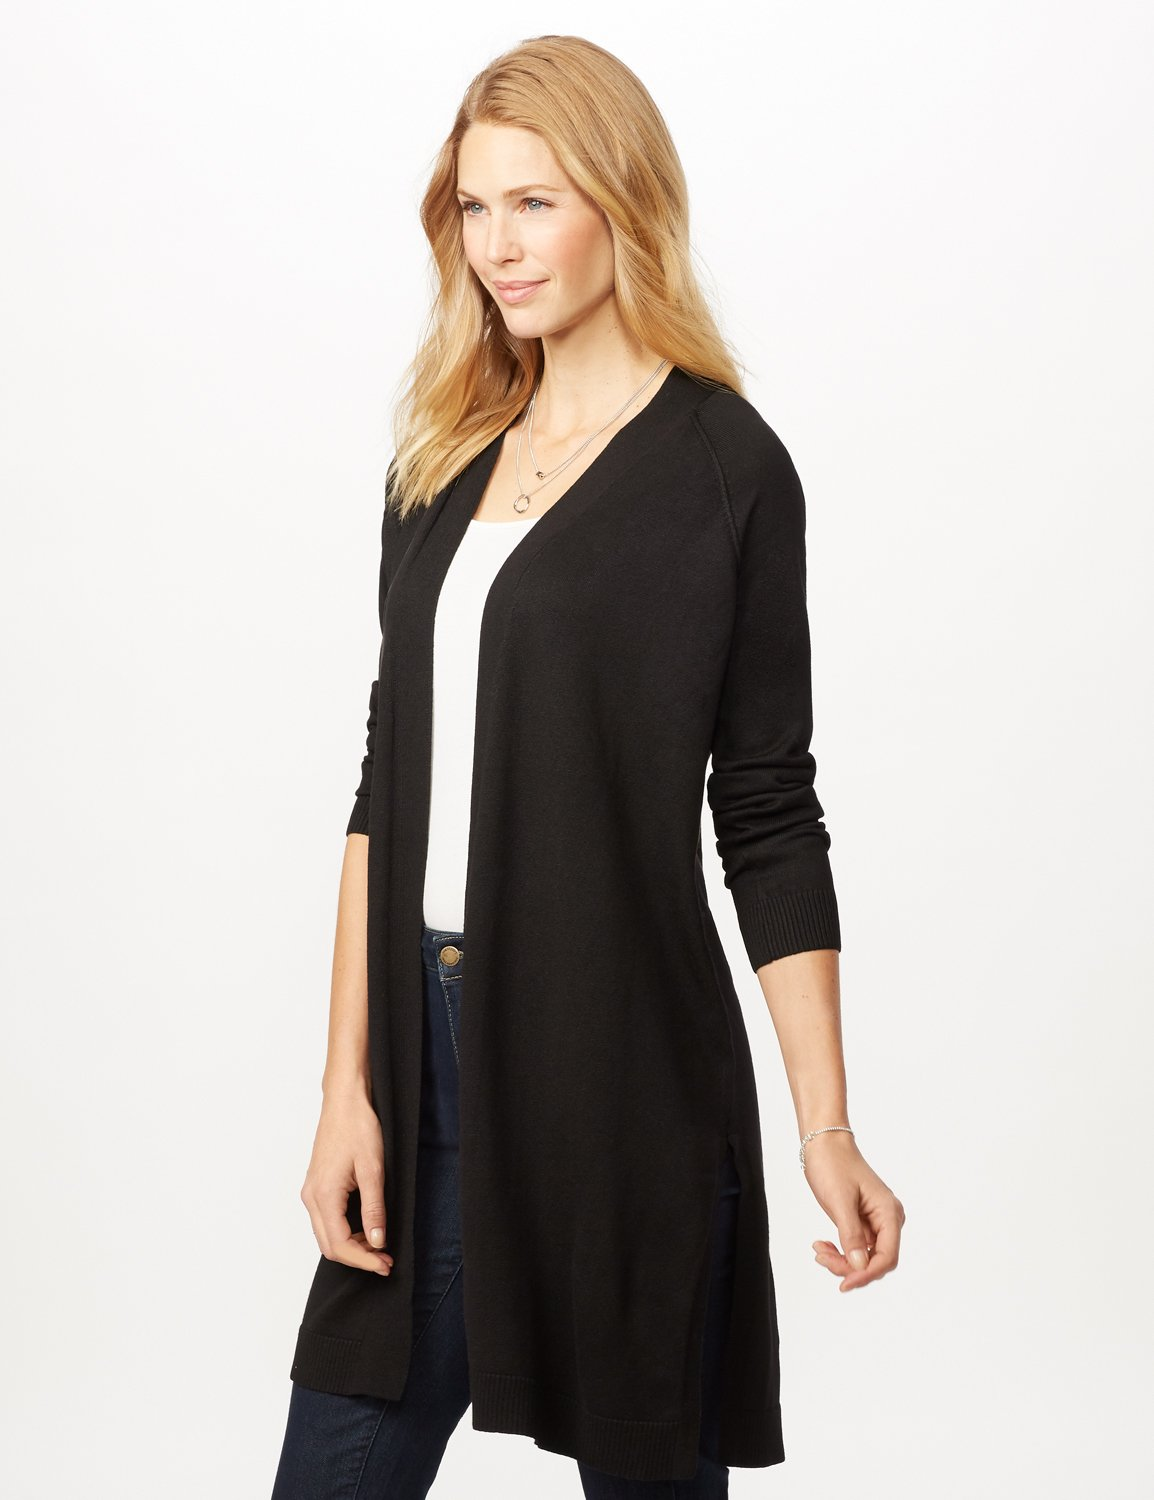 Long Sleeve Duster with Side Slits - Black - Detail